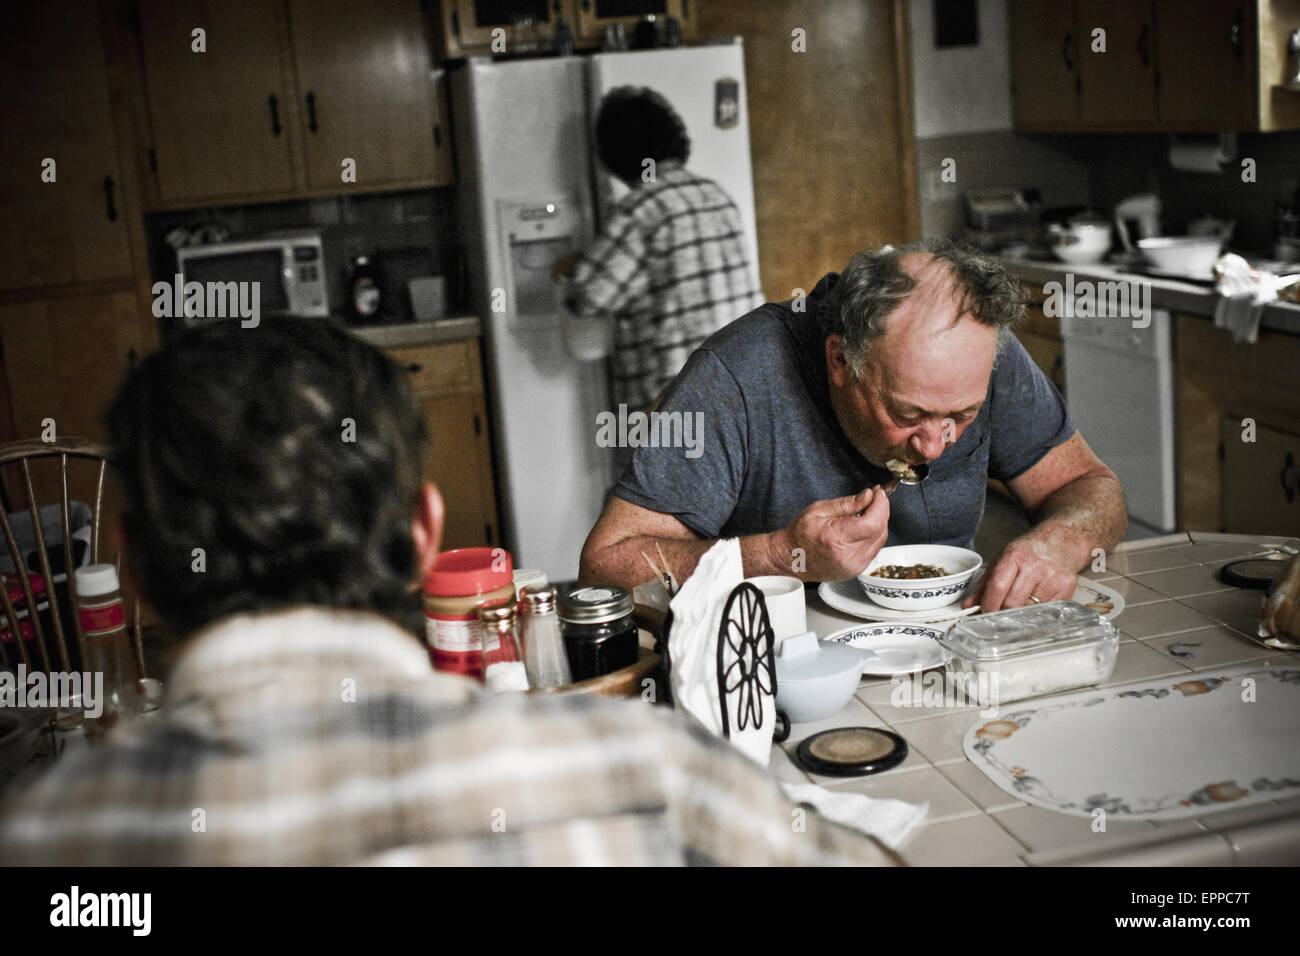 a father and son eat dinner at the kitchen table after milking the EPPC7T